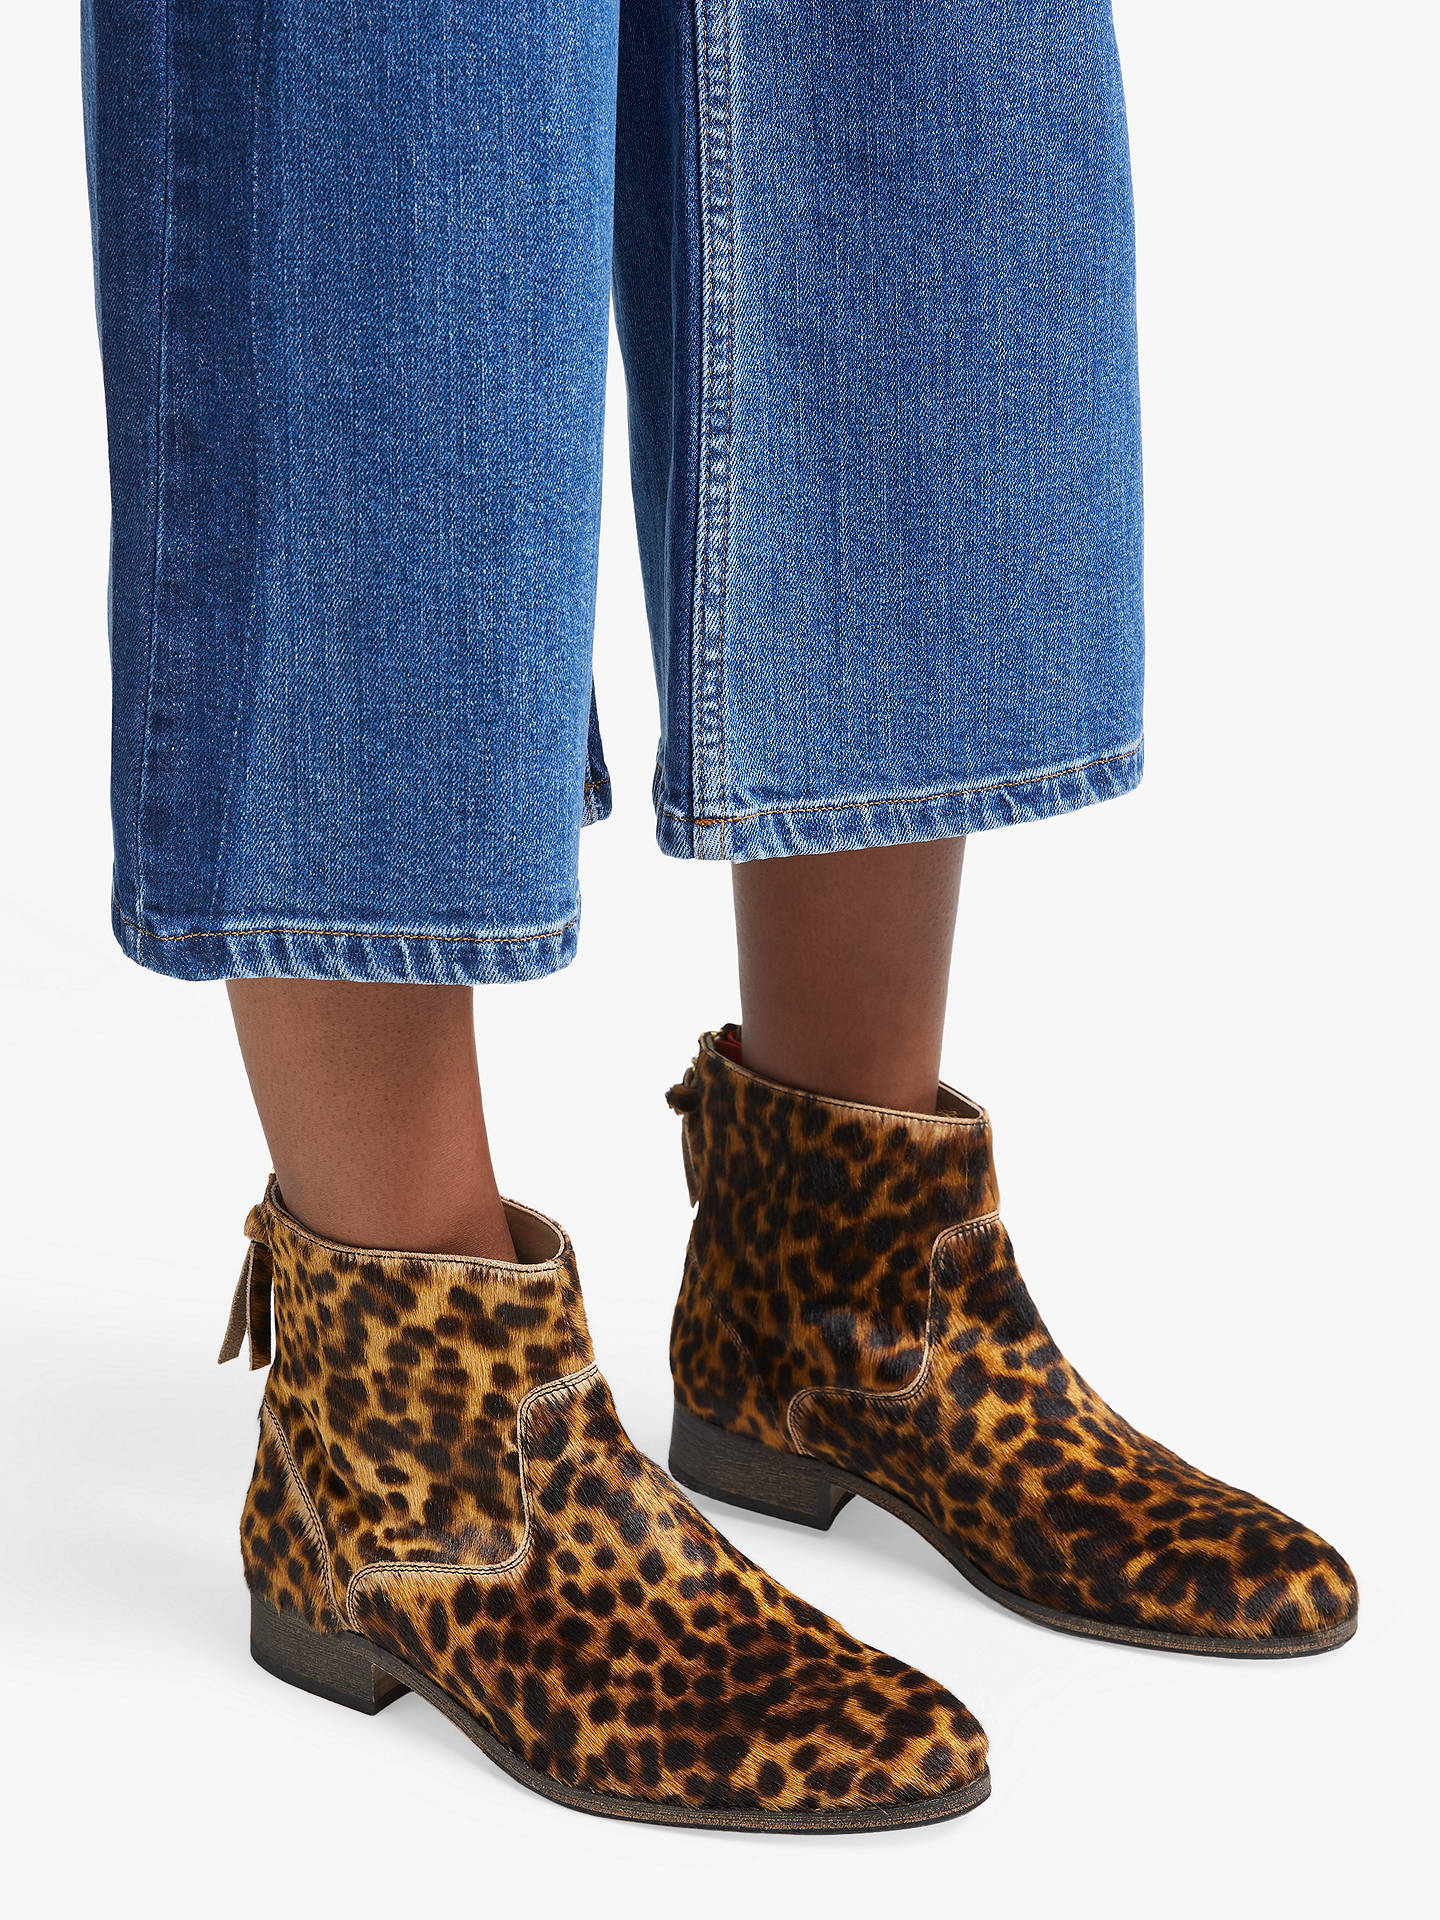 variety design beauty reasonable price Boden Kingham Ankle Boots, Tan Leopard Suede